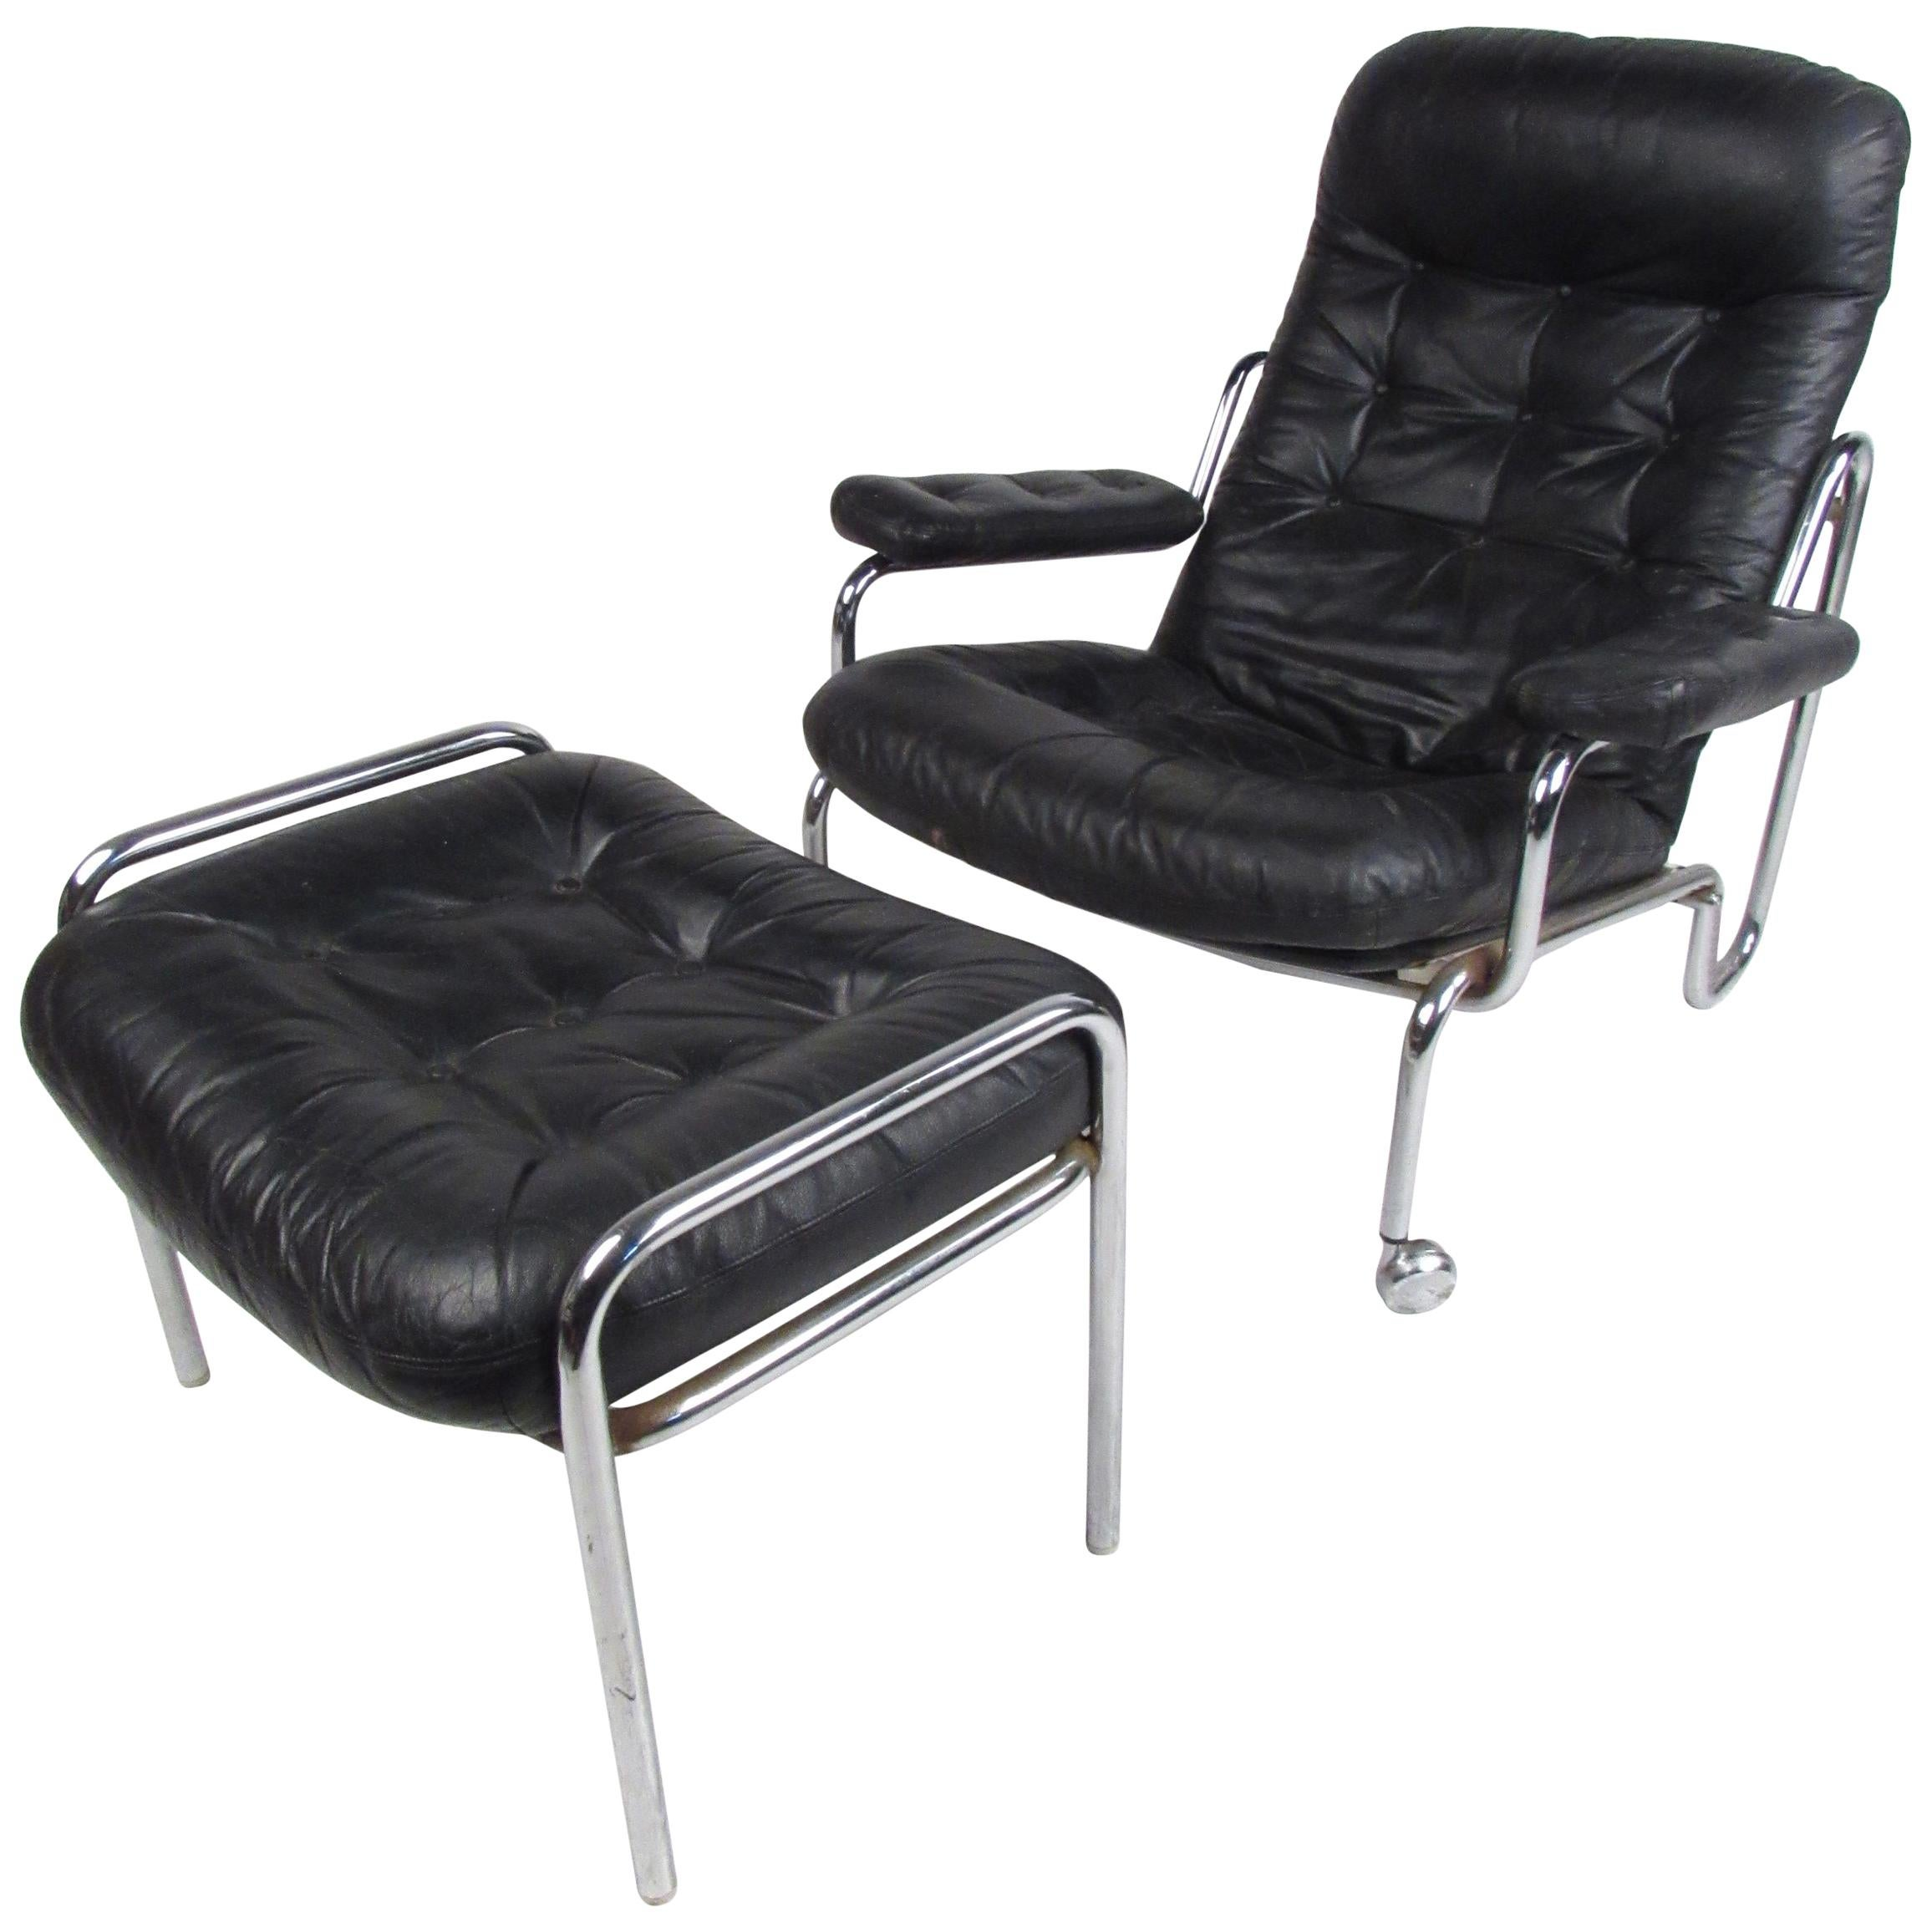 Mid-Century Modern Bruno Mathsson Lounge Chair and Ottoman by DUX